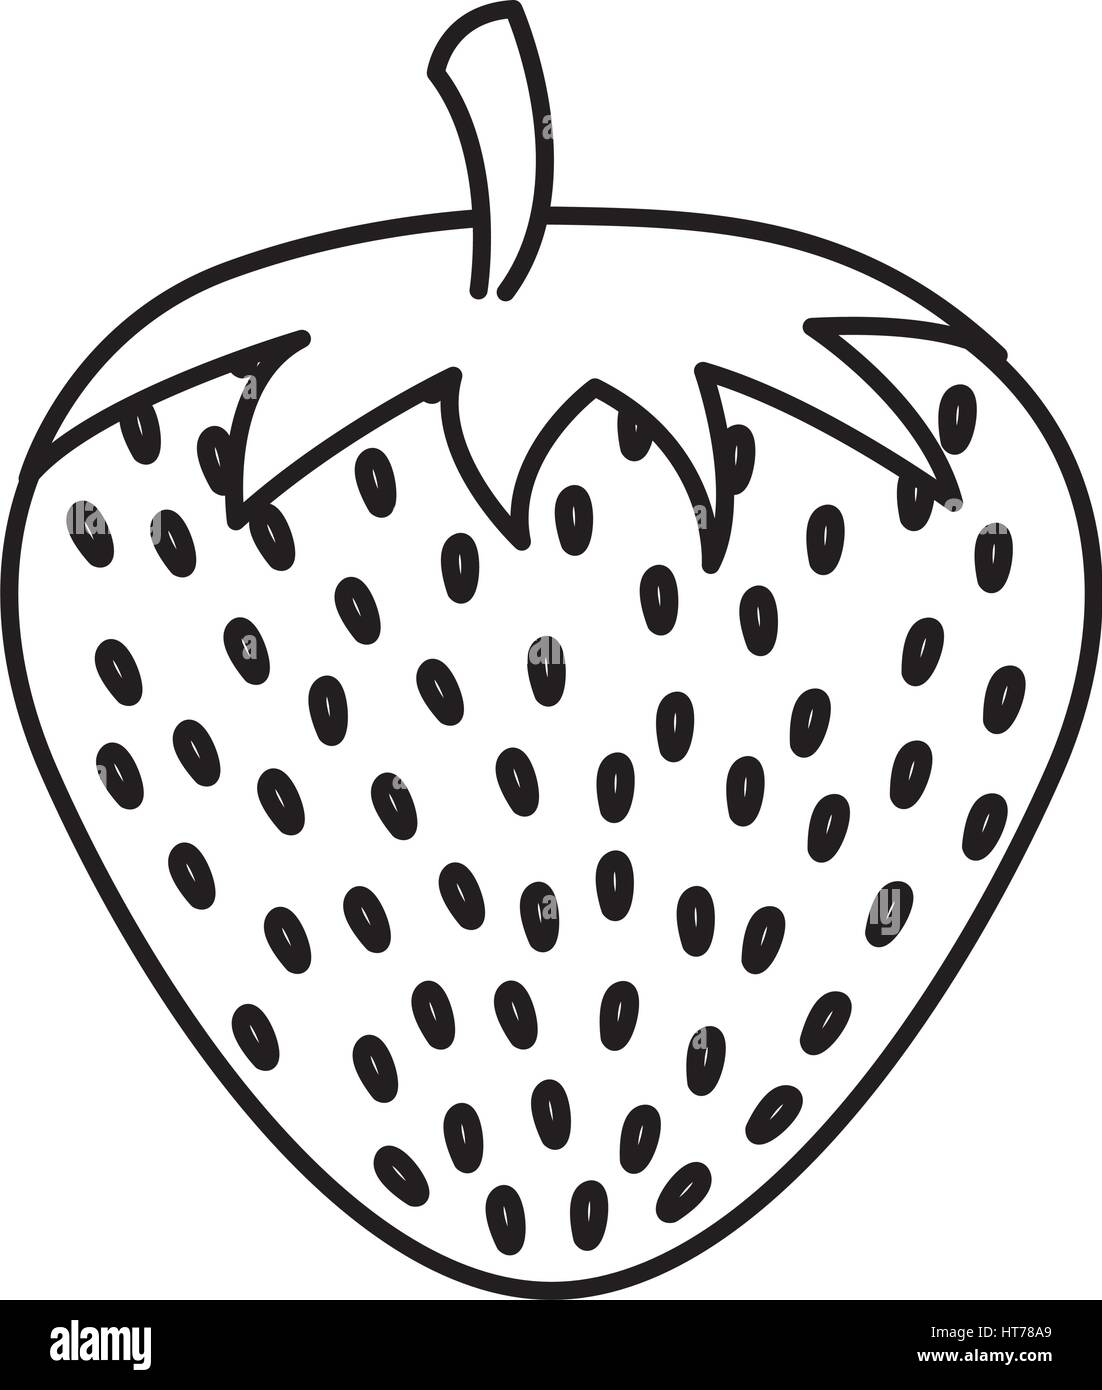 Uncategorized Drawing Of Strawberry strawberry fresh fruit drawing icon stock vector art icon